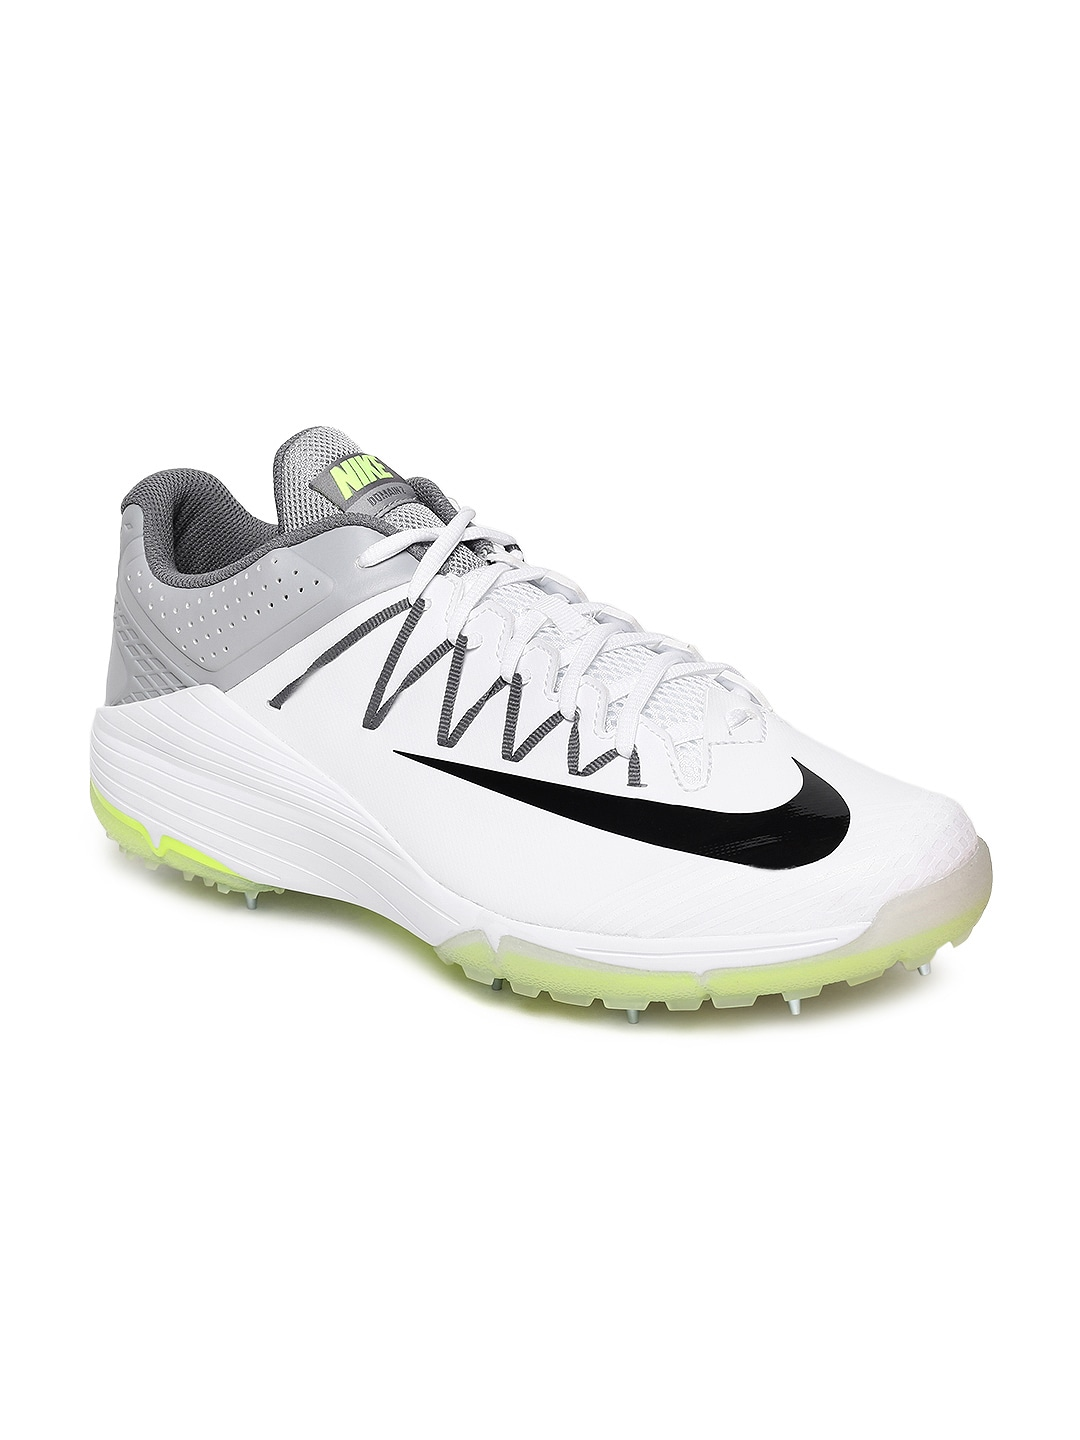 detailed look 59779 87a30 Nike Revolution - Buy Nike Revolution online in India